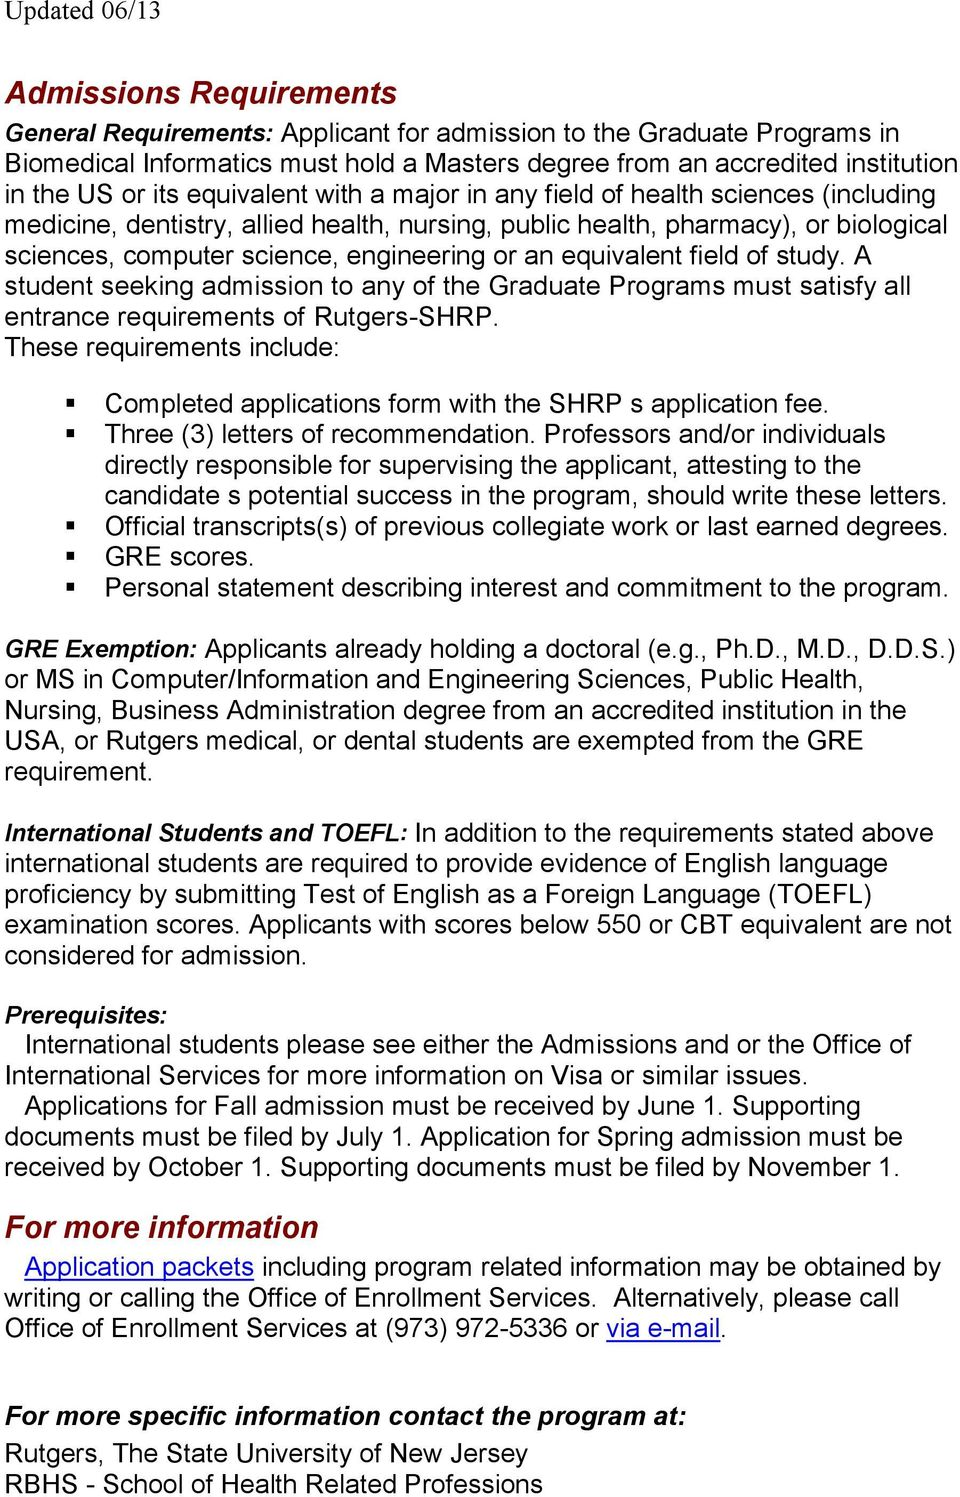 equivalent field of study. A student seeking admission to any of the Graduate Programs must satisfy all entrance requirements of Rutgers-SHRP.